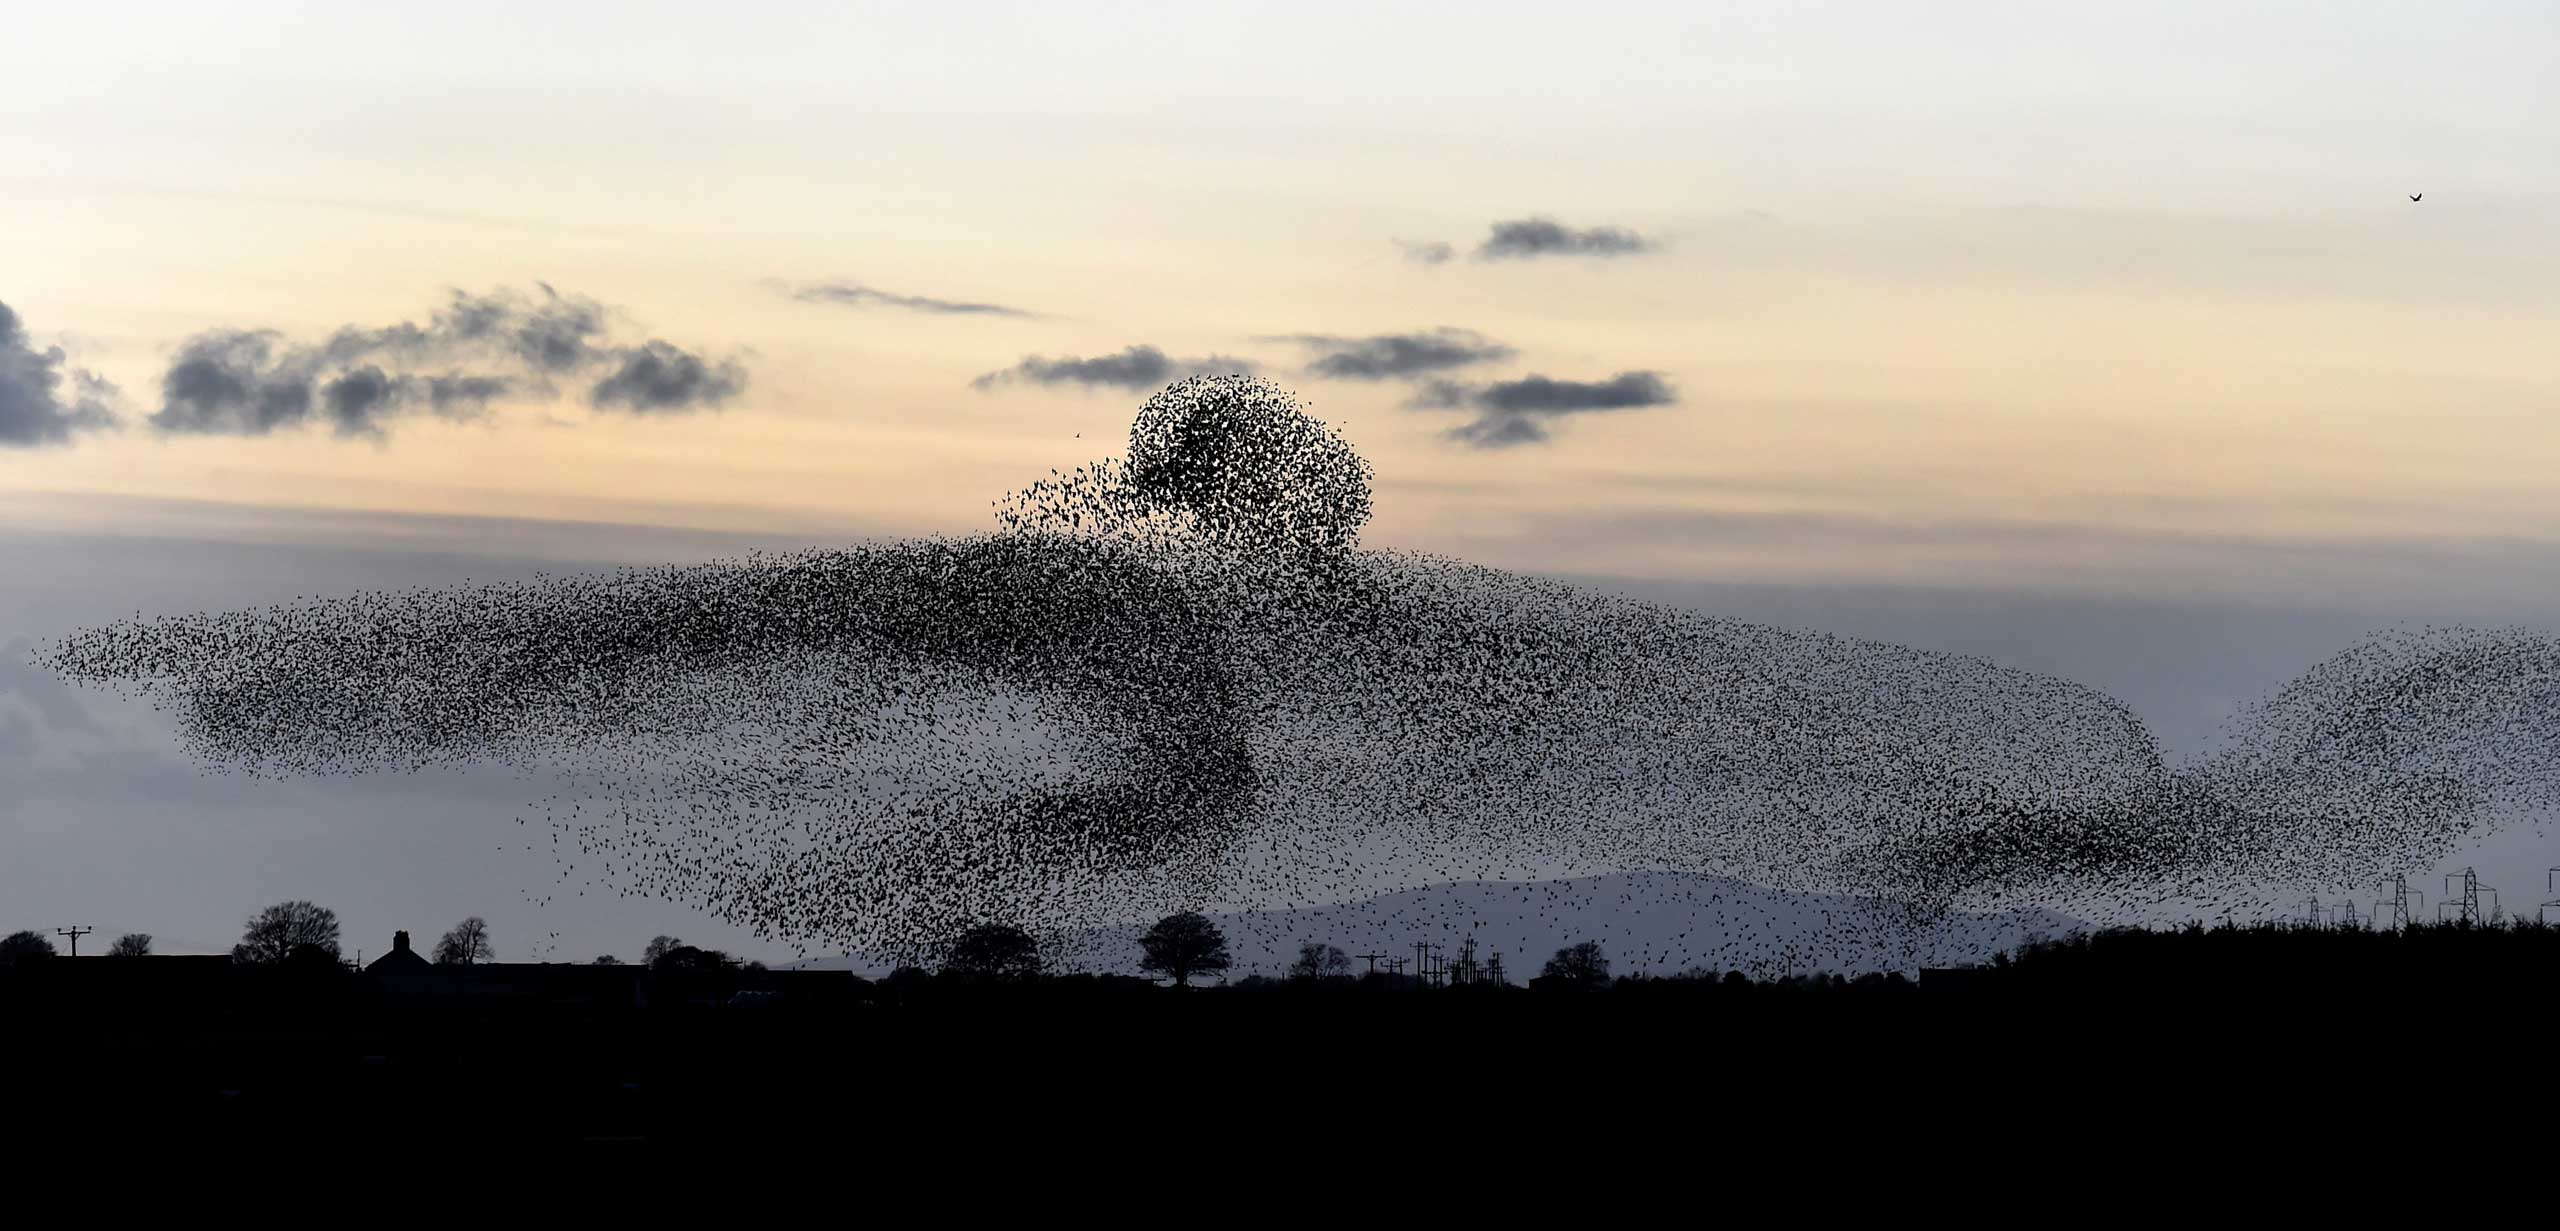 Nov. 5, 2014. Starlings in the Scottish Borders. Tens of thousands of starlings start their murmuration, with Criffel mountain in the background, as dusk falls near Gretna Green on the England and Scotland border.